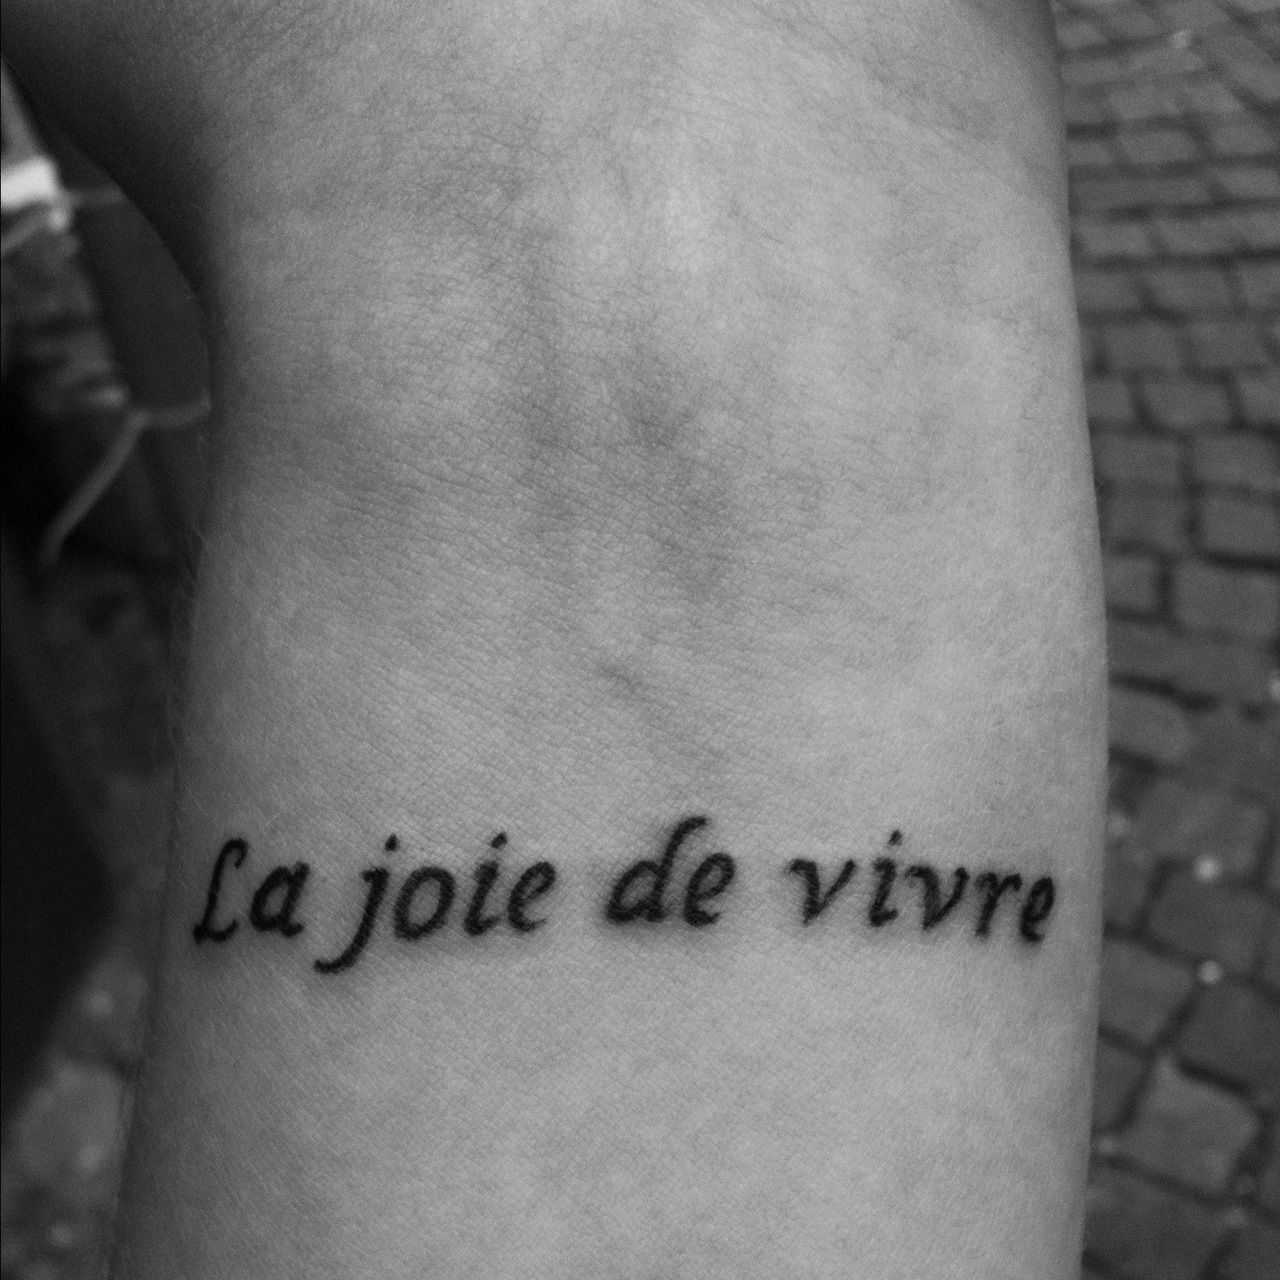 Arte De Vivir Meaning In English This Is My First Tattoo It S On My Left Wrist In English La